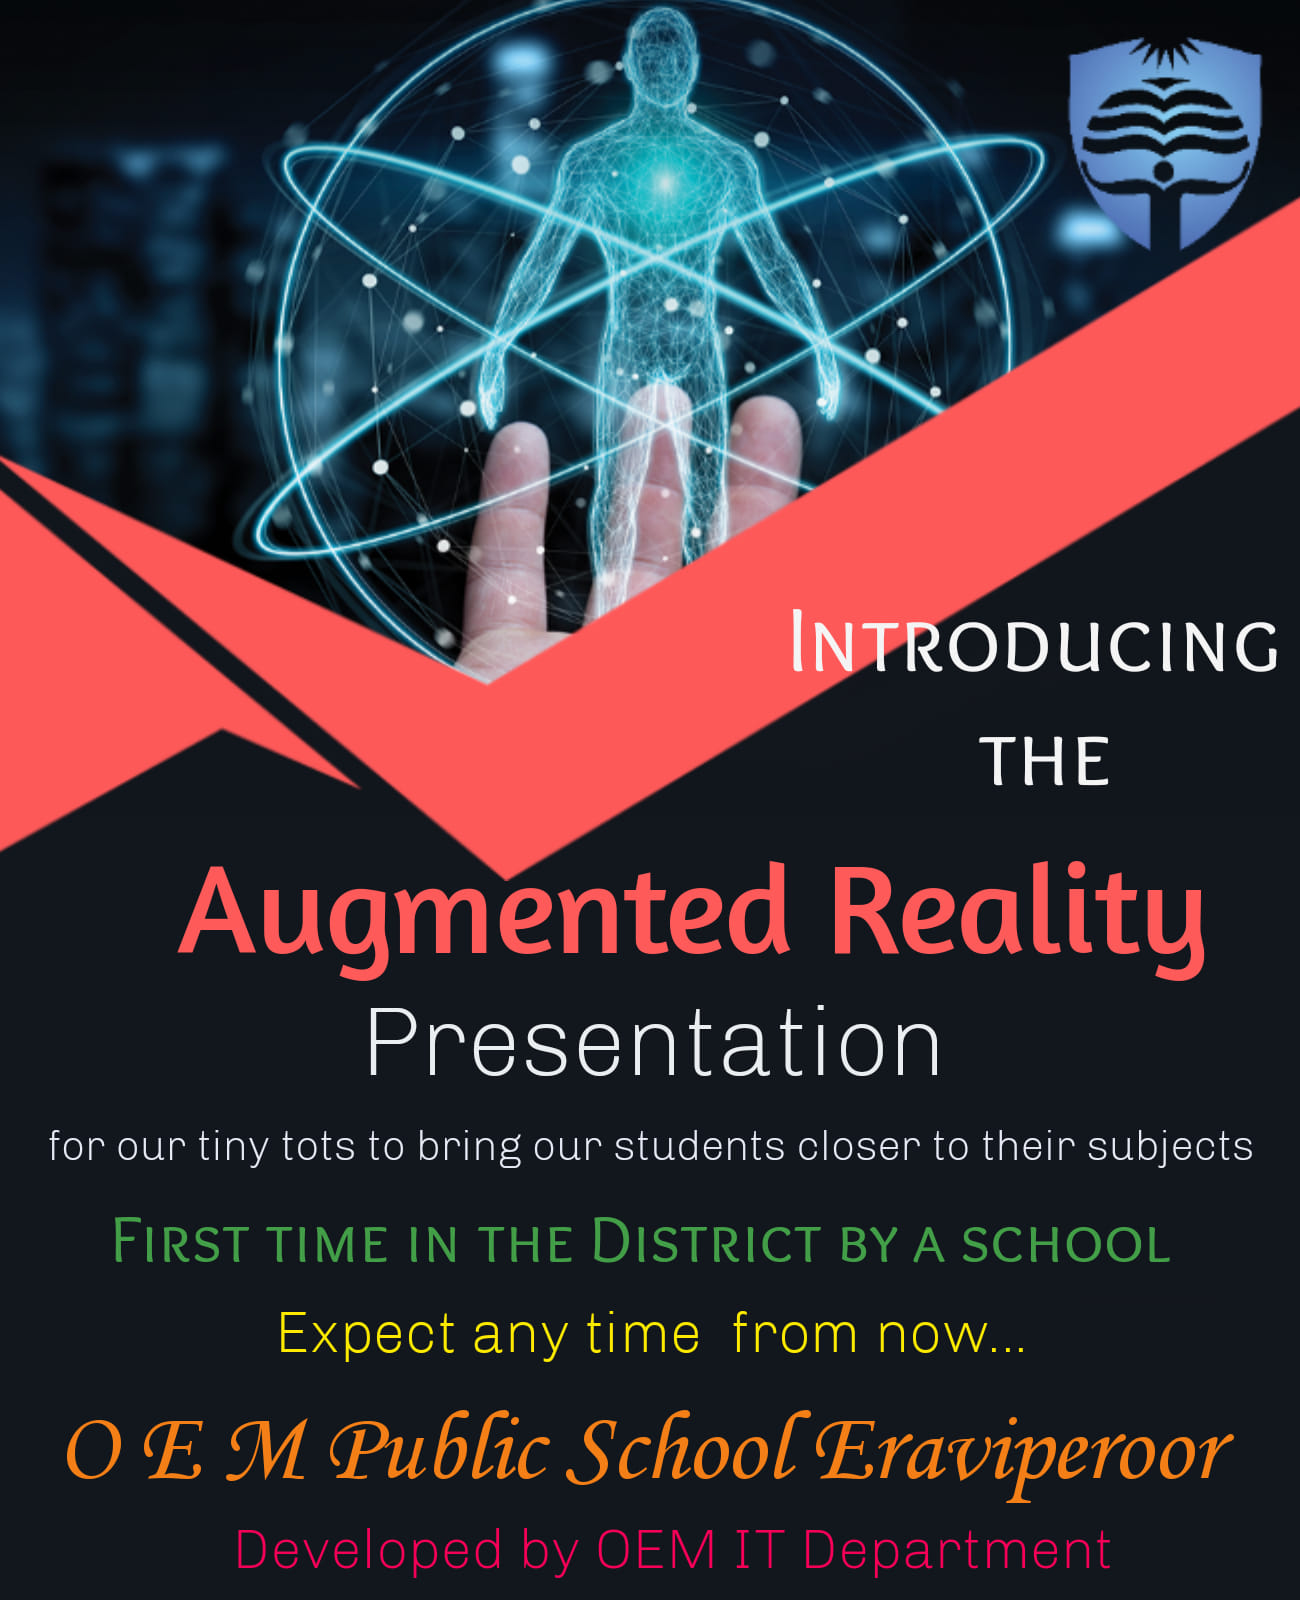 AUGMENTED REALITY- 1ST TIME IN DISTRICT